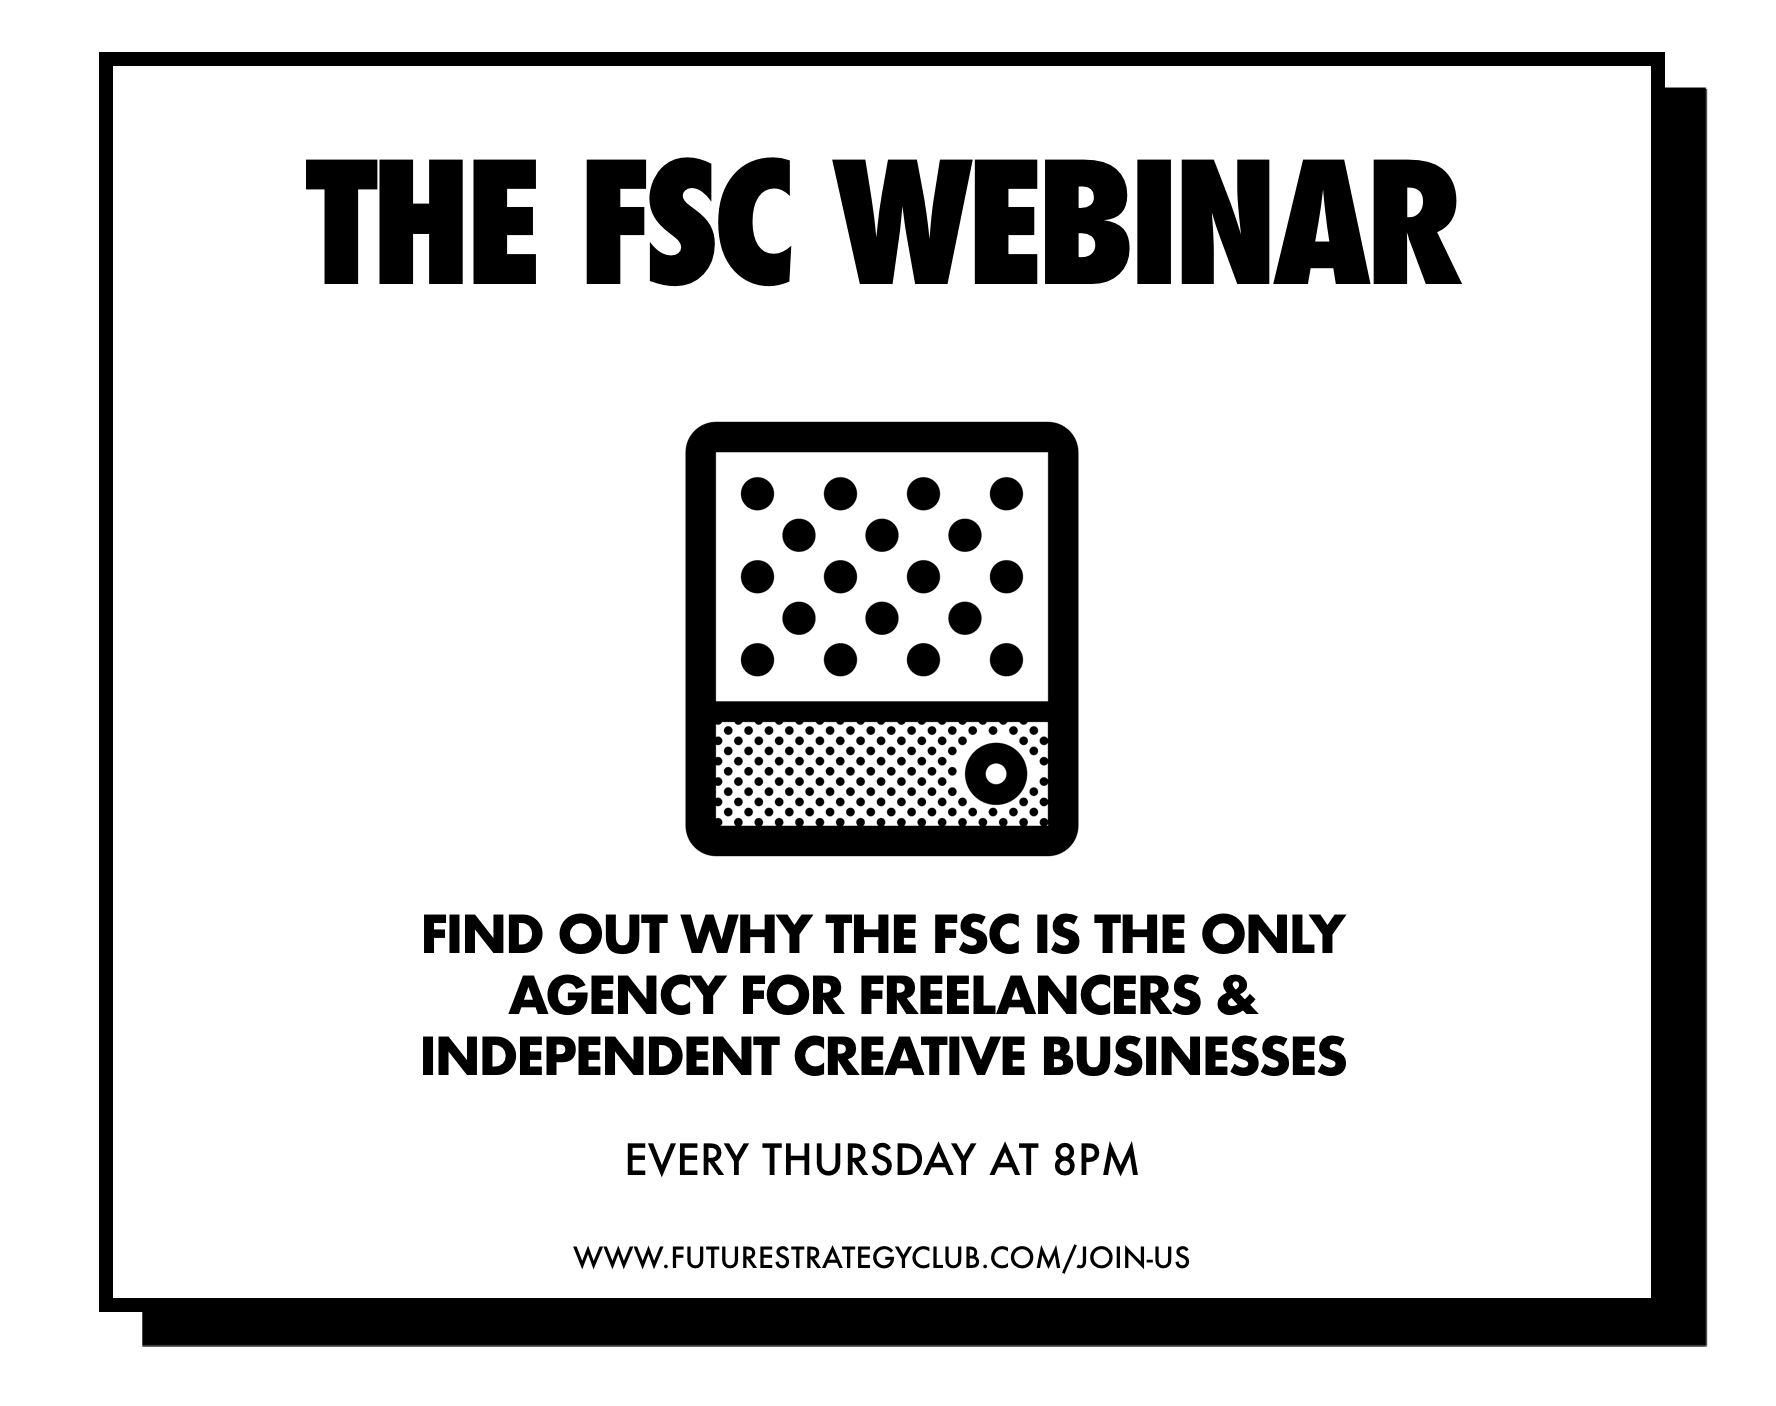 get to know the FSC - Join FSC founder Justin Small on our Thursday webinar to find out why we set up the FSC, how it works and what the benefits of joining are.